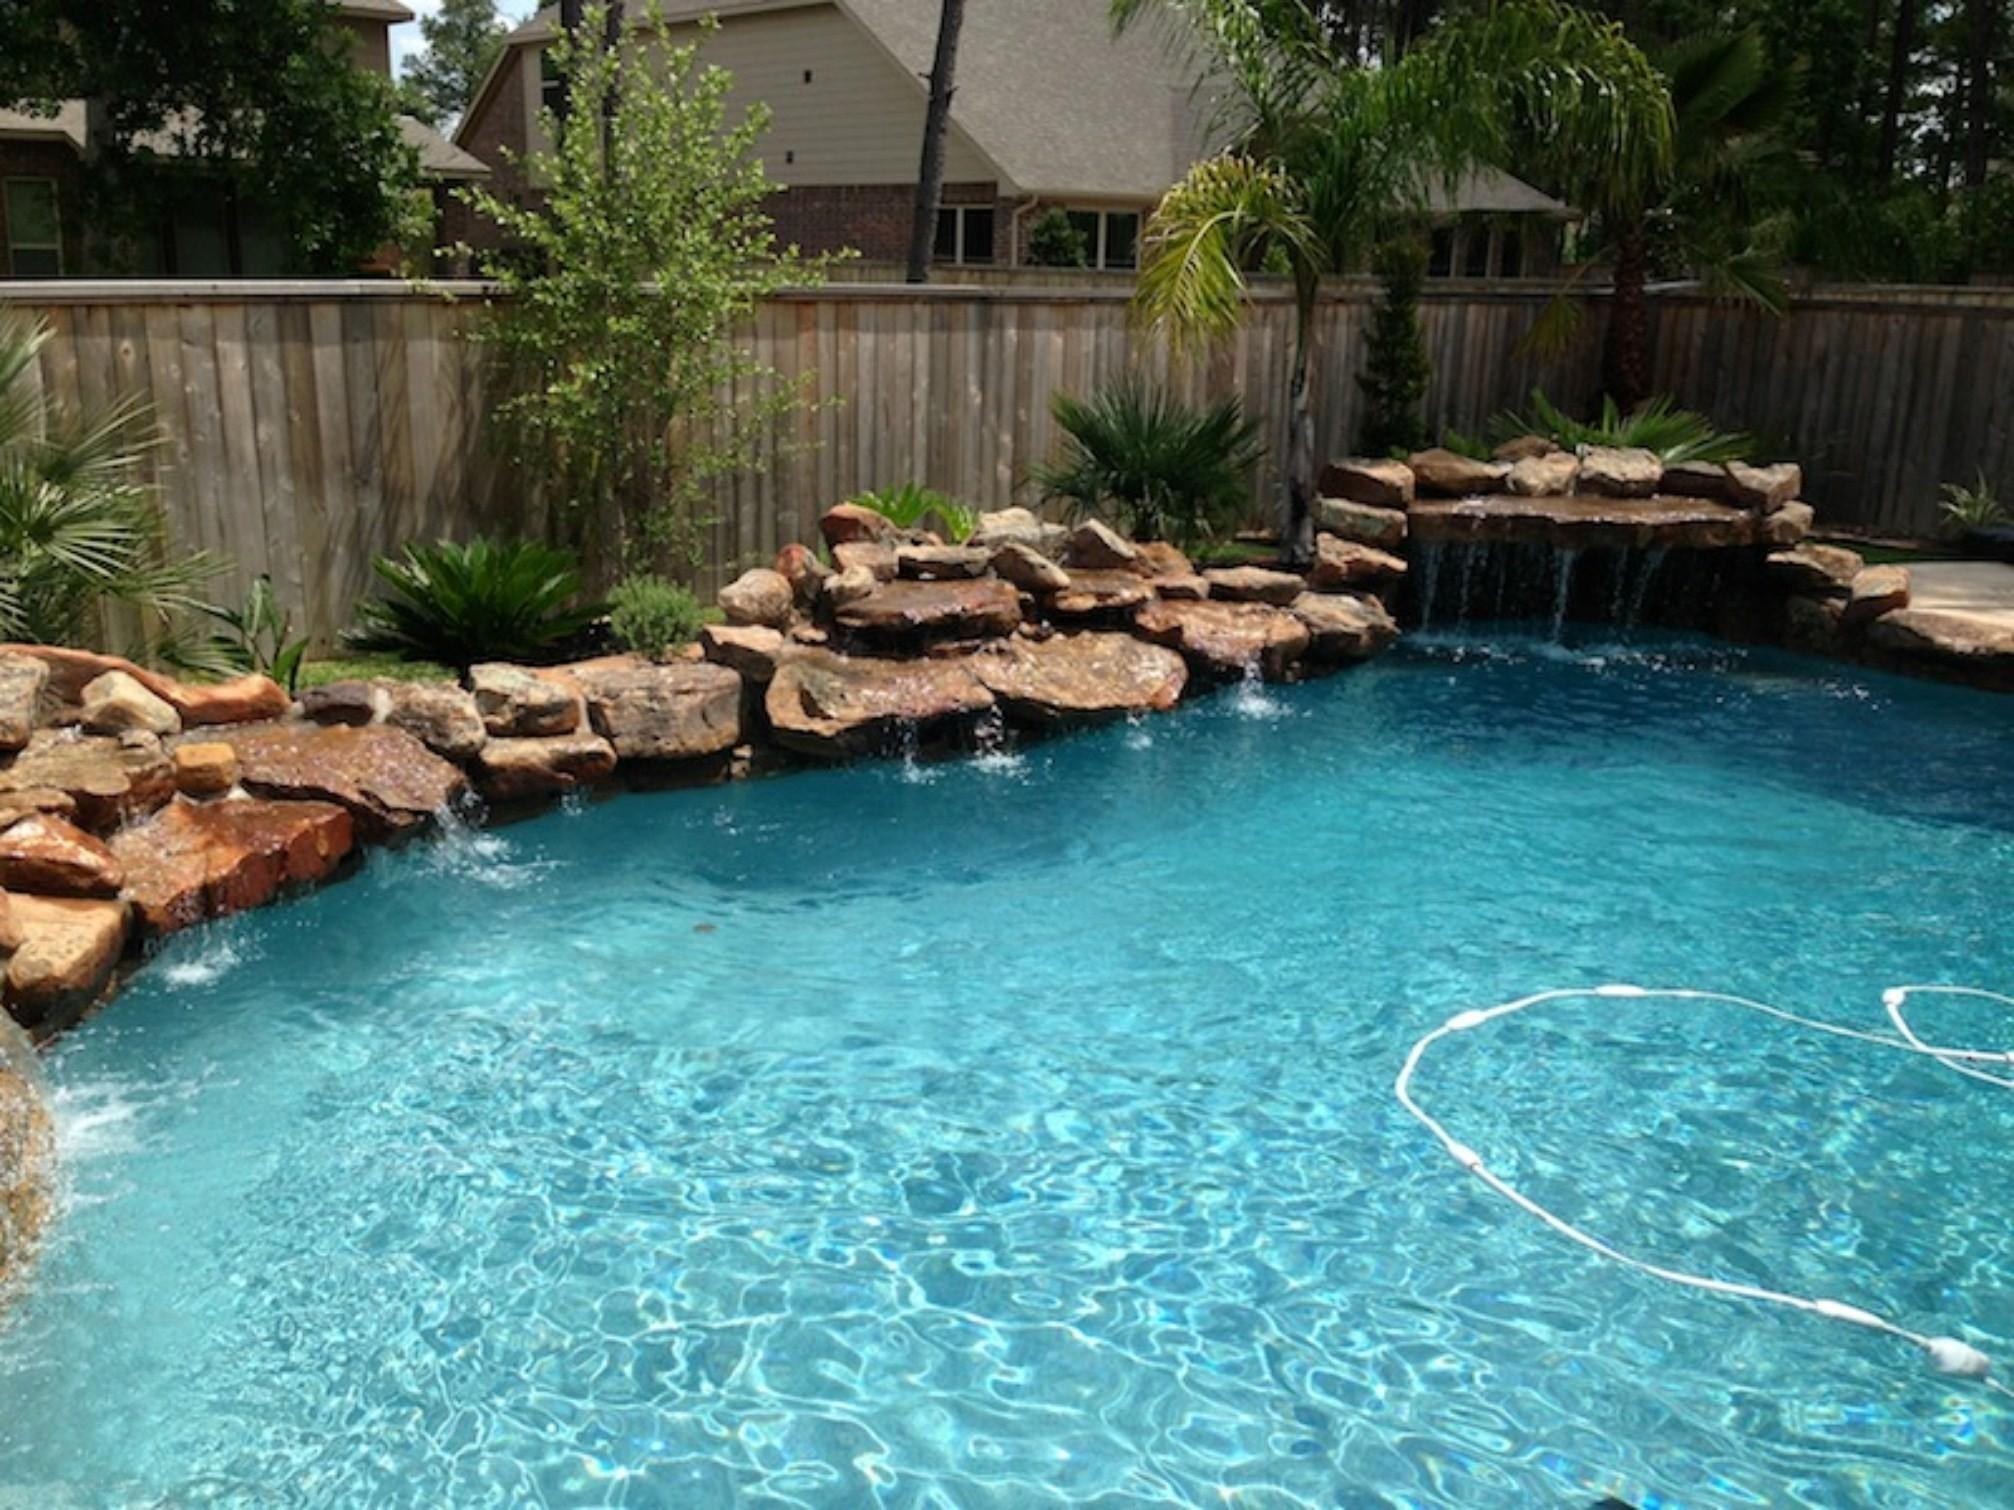 Effective Pool Designs Small Space Enjoyable